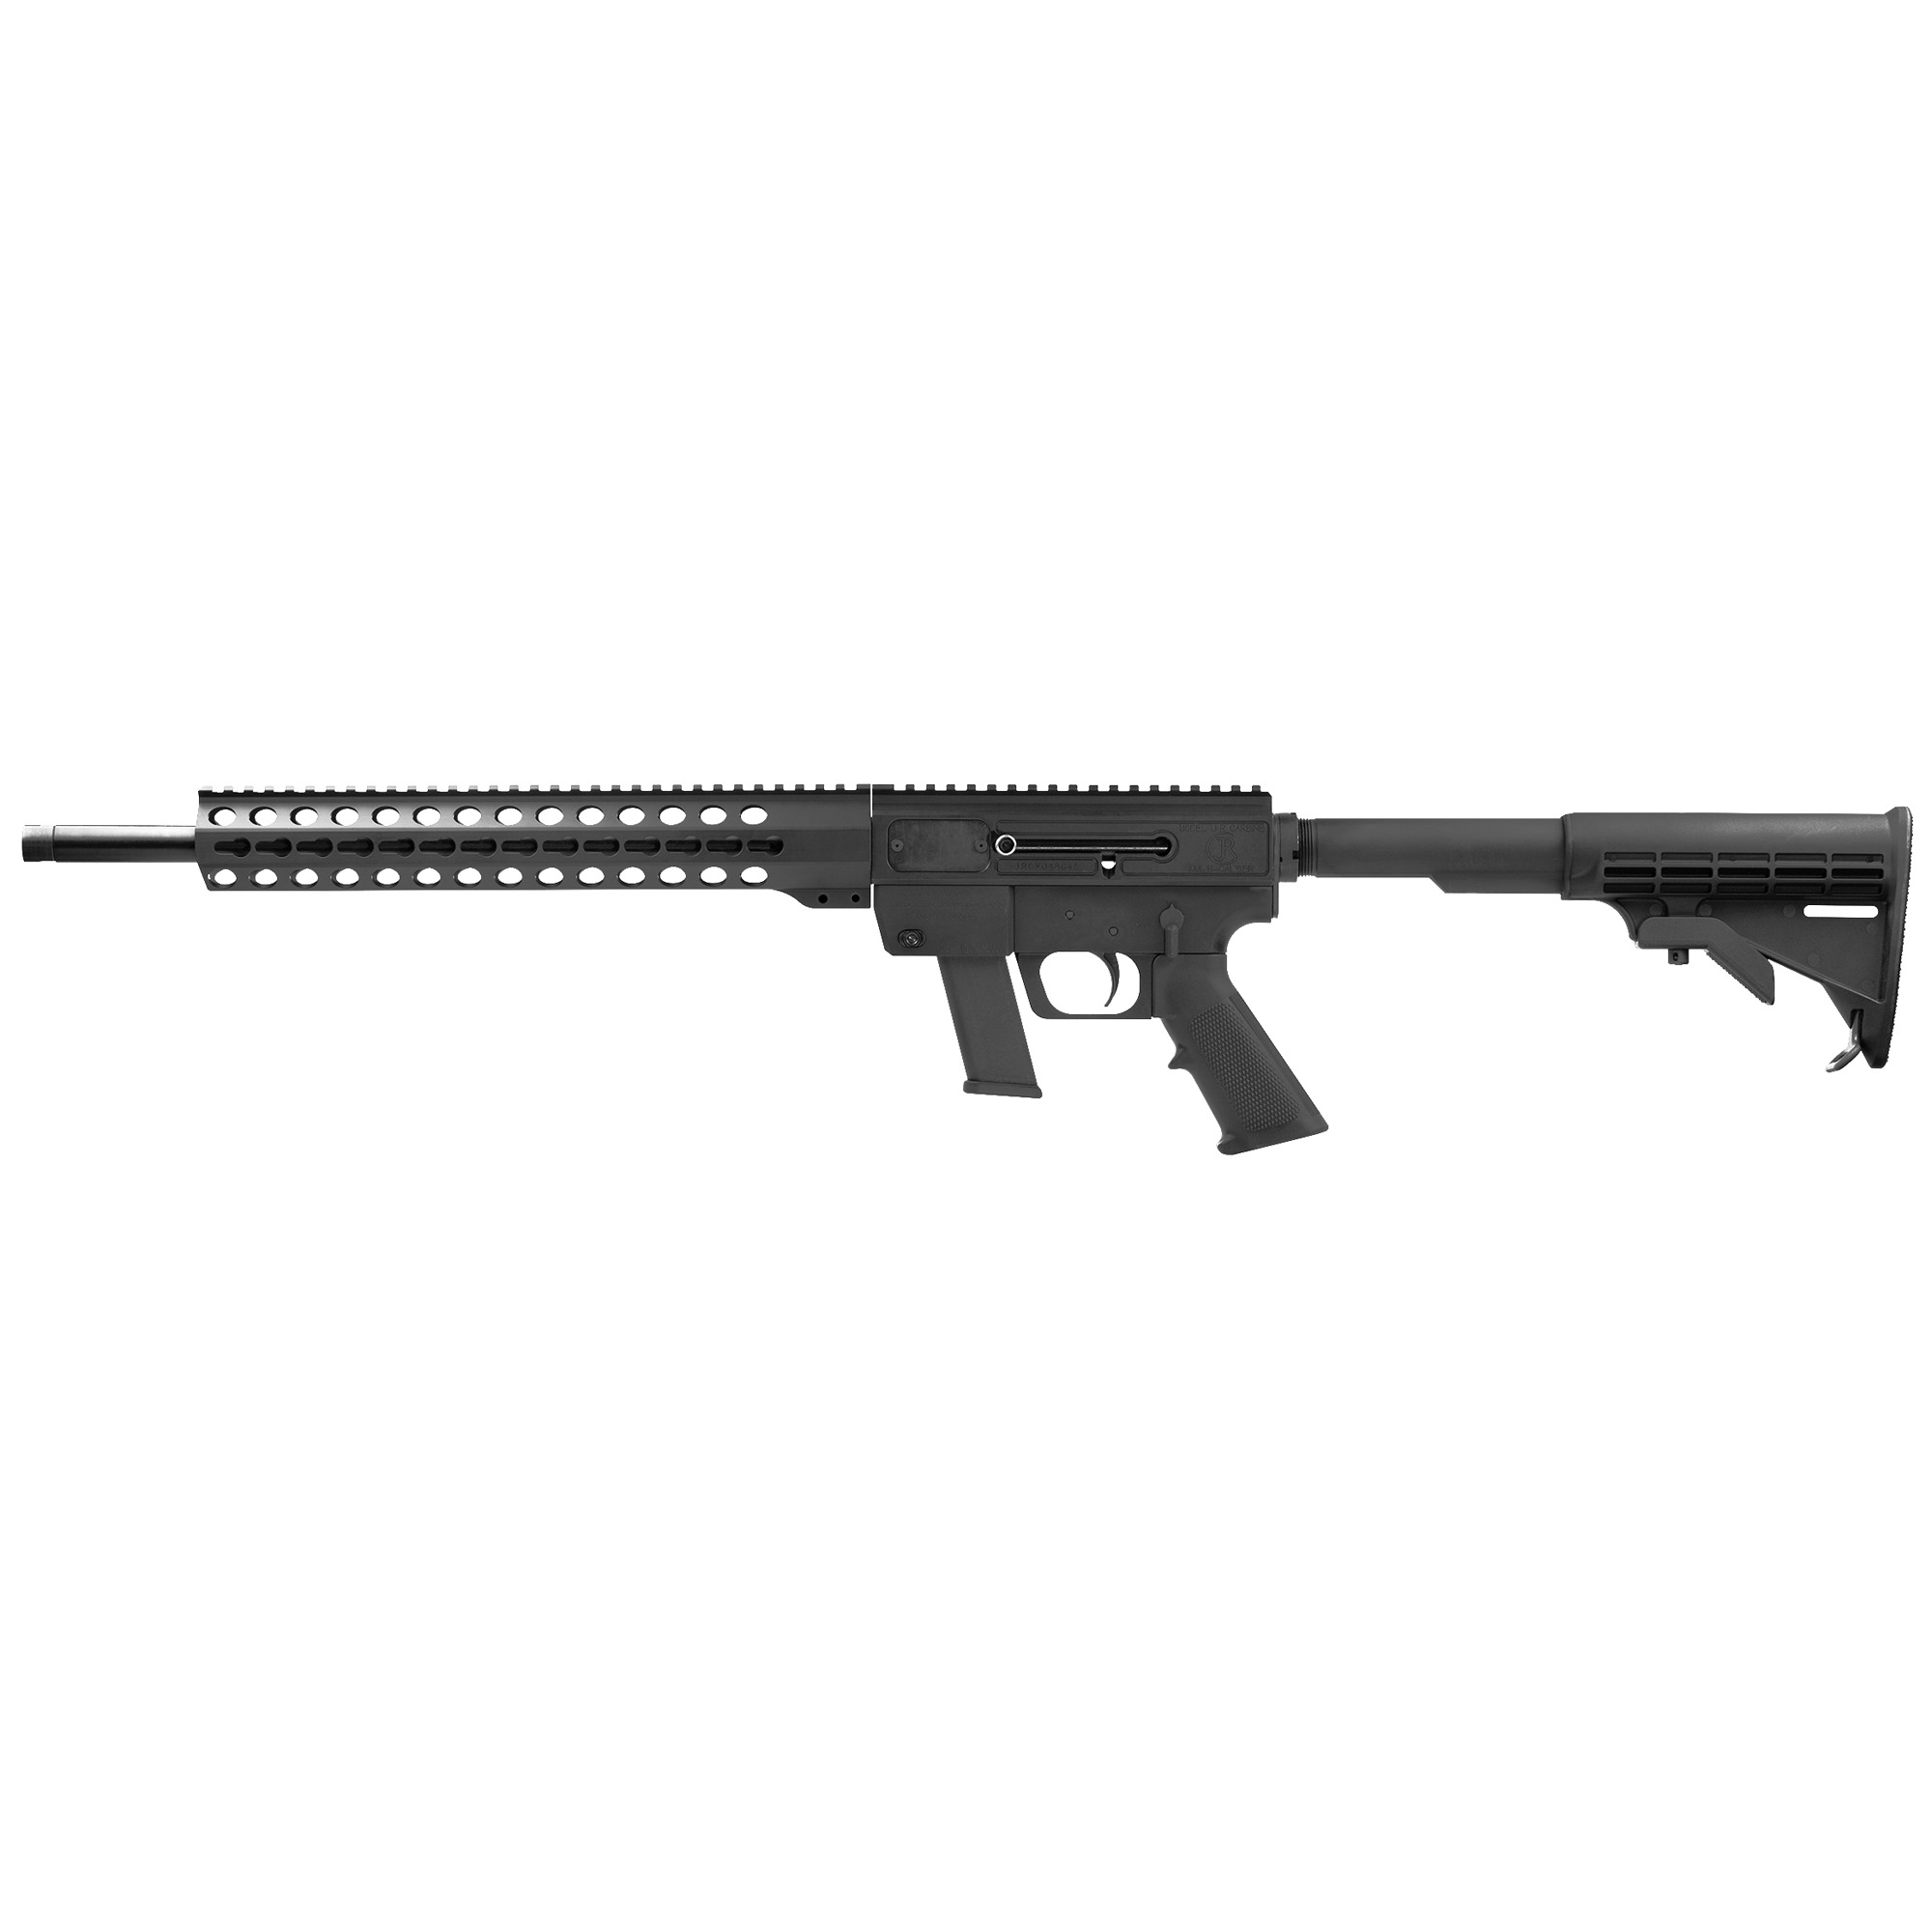 """The JRC Gen3 features 6061-T6 aluminum construction"""" ambidextrous ejection and charging"""" and a 4140 chromoly button rifled barrel."""